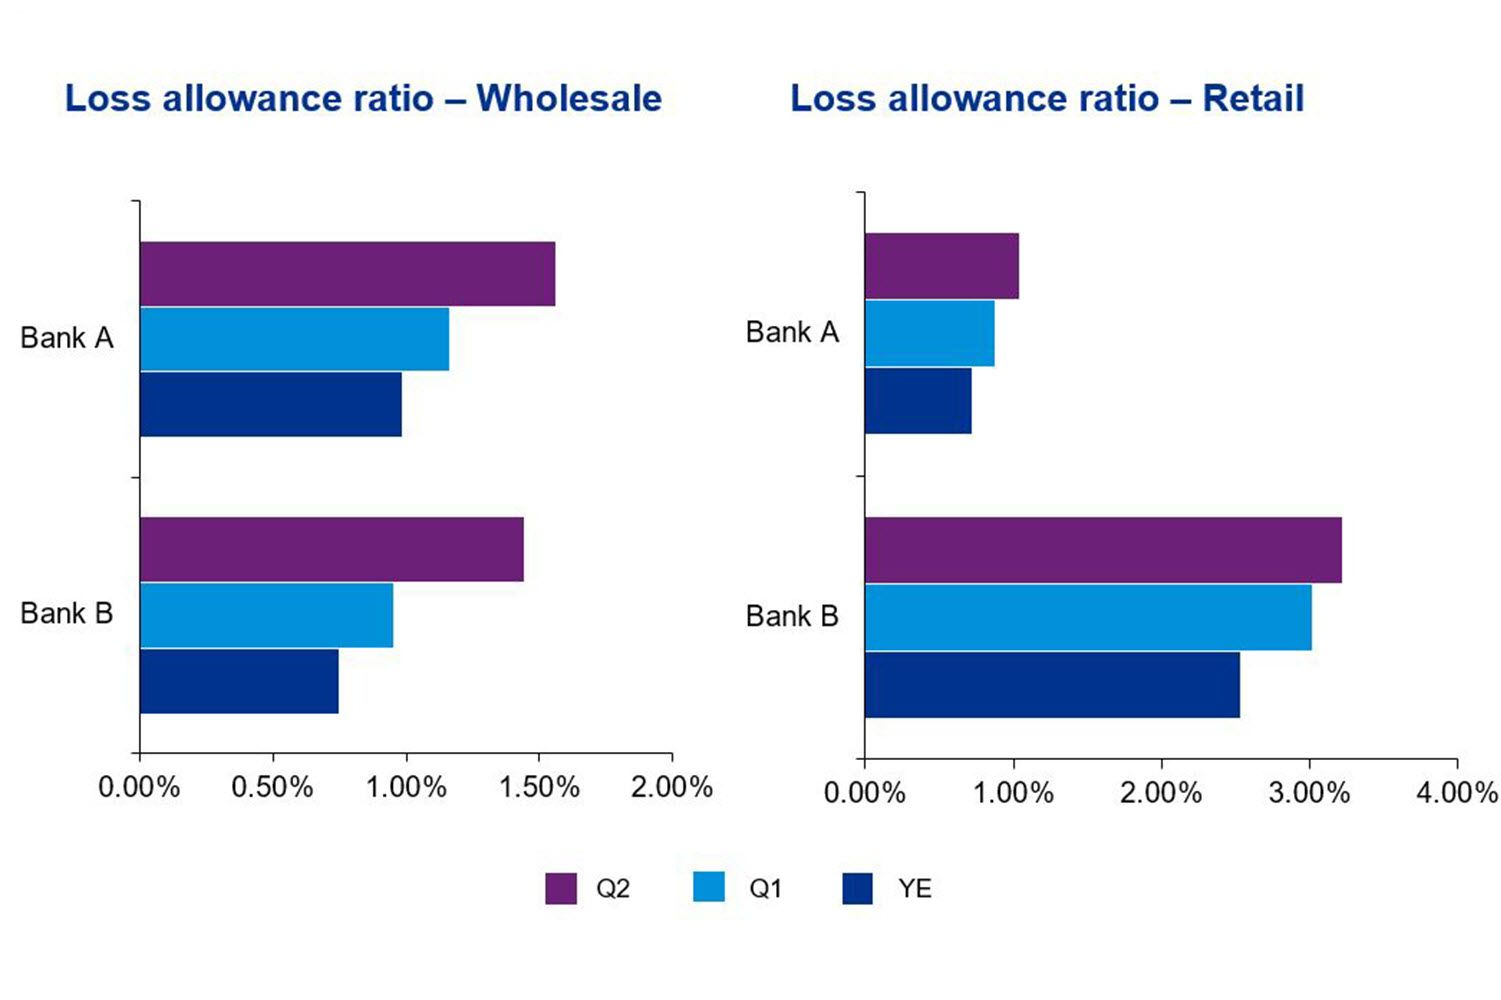 Loss allowance ratio – Wholesale